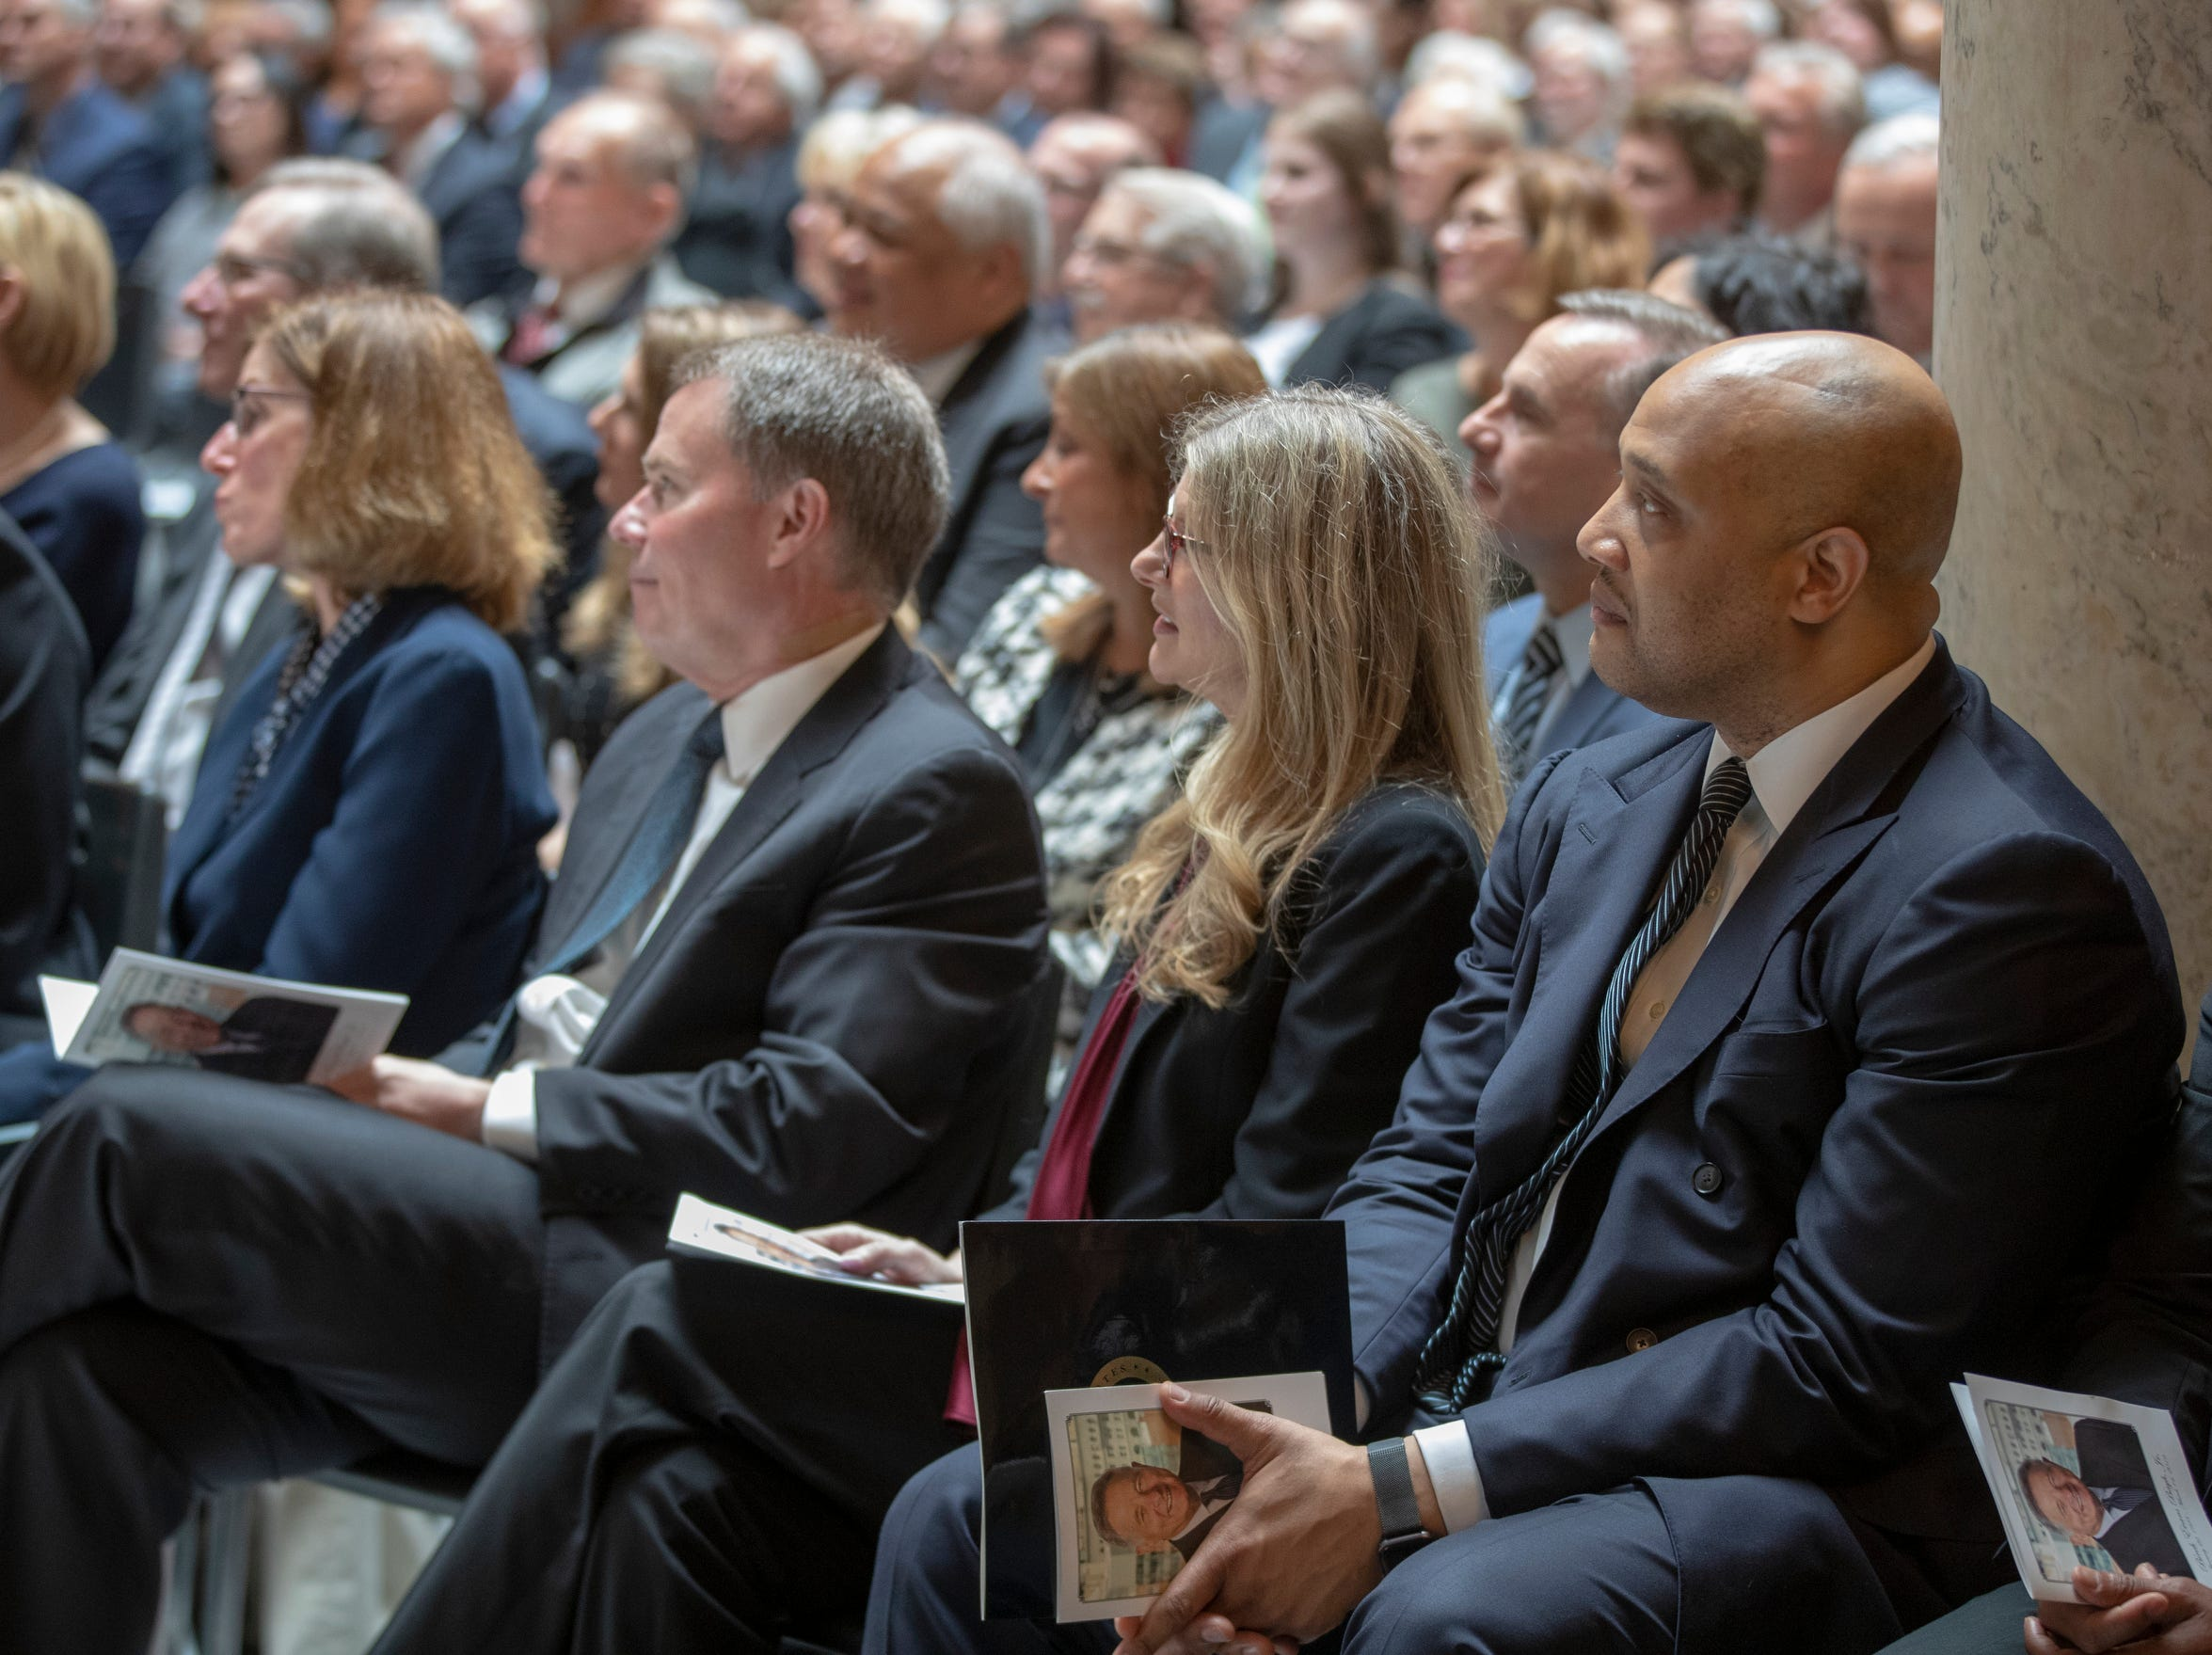 Andre Carson, U.S. Representative, during a service for Indiana's Birch Bayh, who died on March 14, and was a three-term U.S. Senator, Indiana Statehouse, Indianapolis, Wednesday, May 1, 2019.